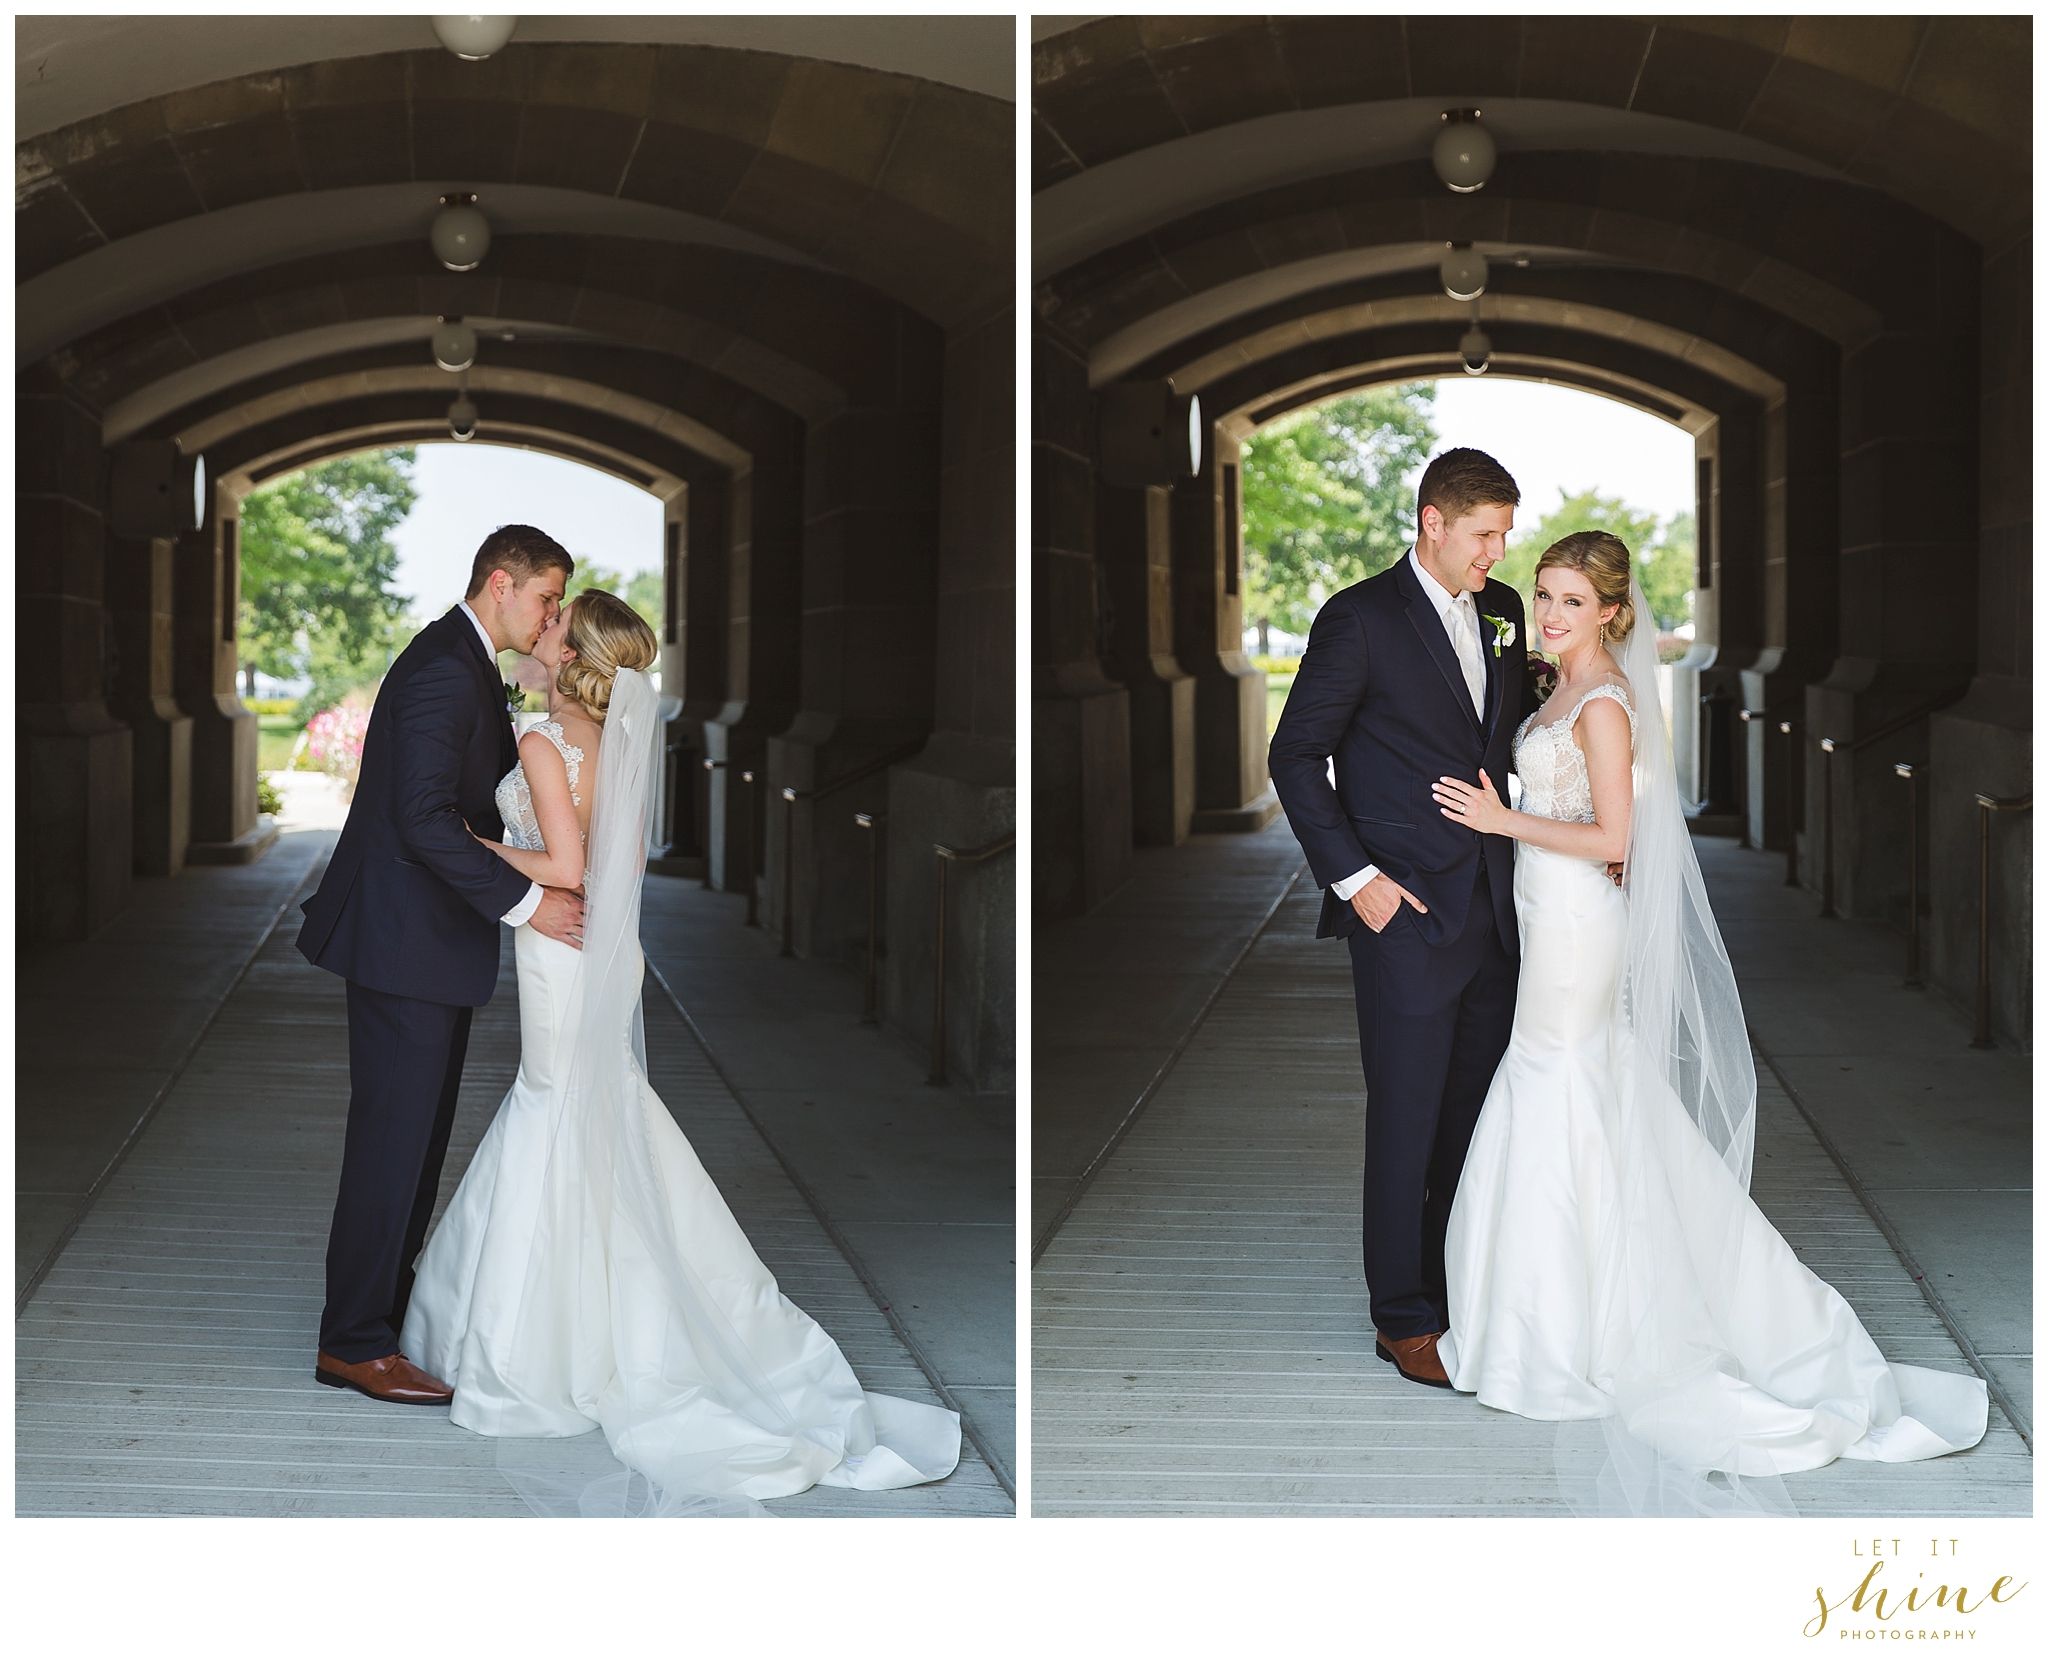 The Grove Hotel Boise Wedding 2017 Let it Shine Photography-8564.jpg